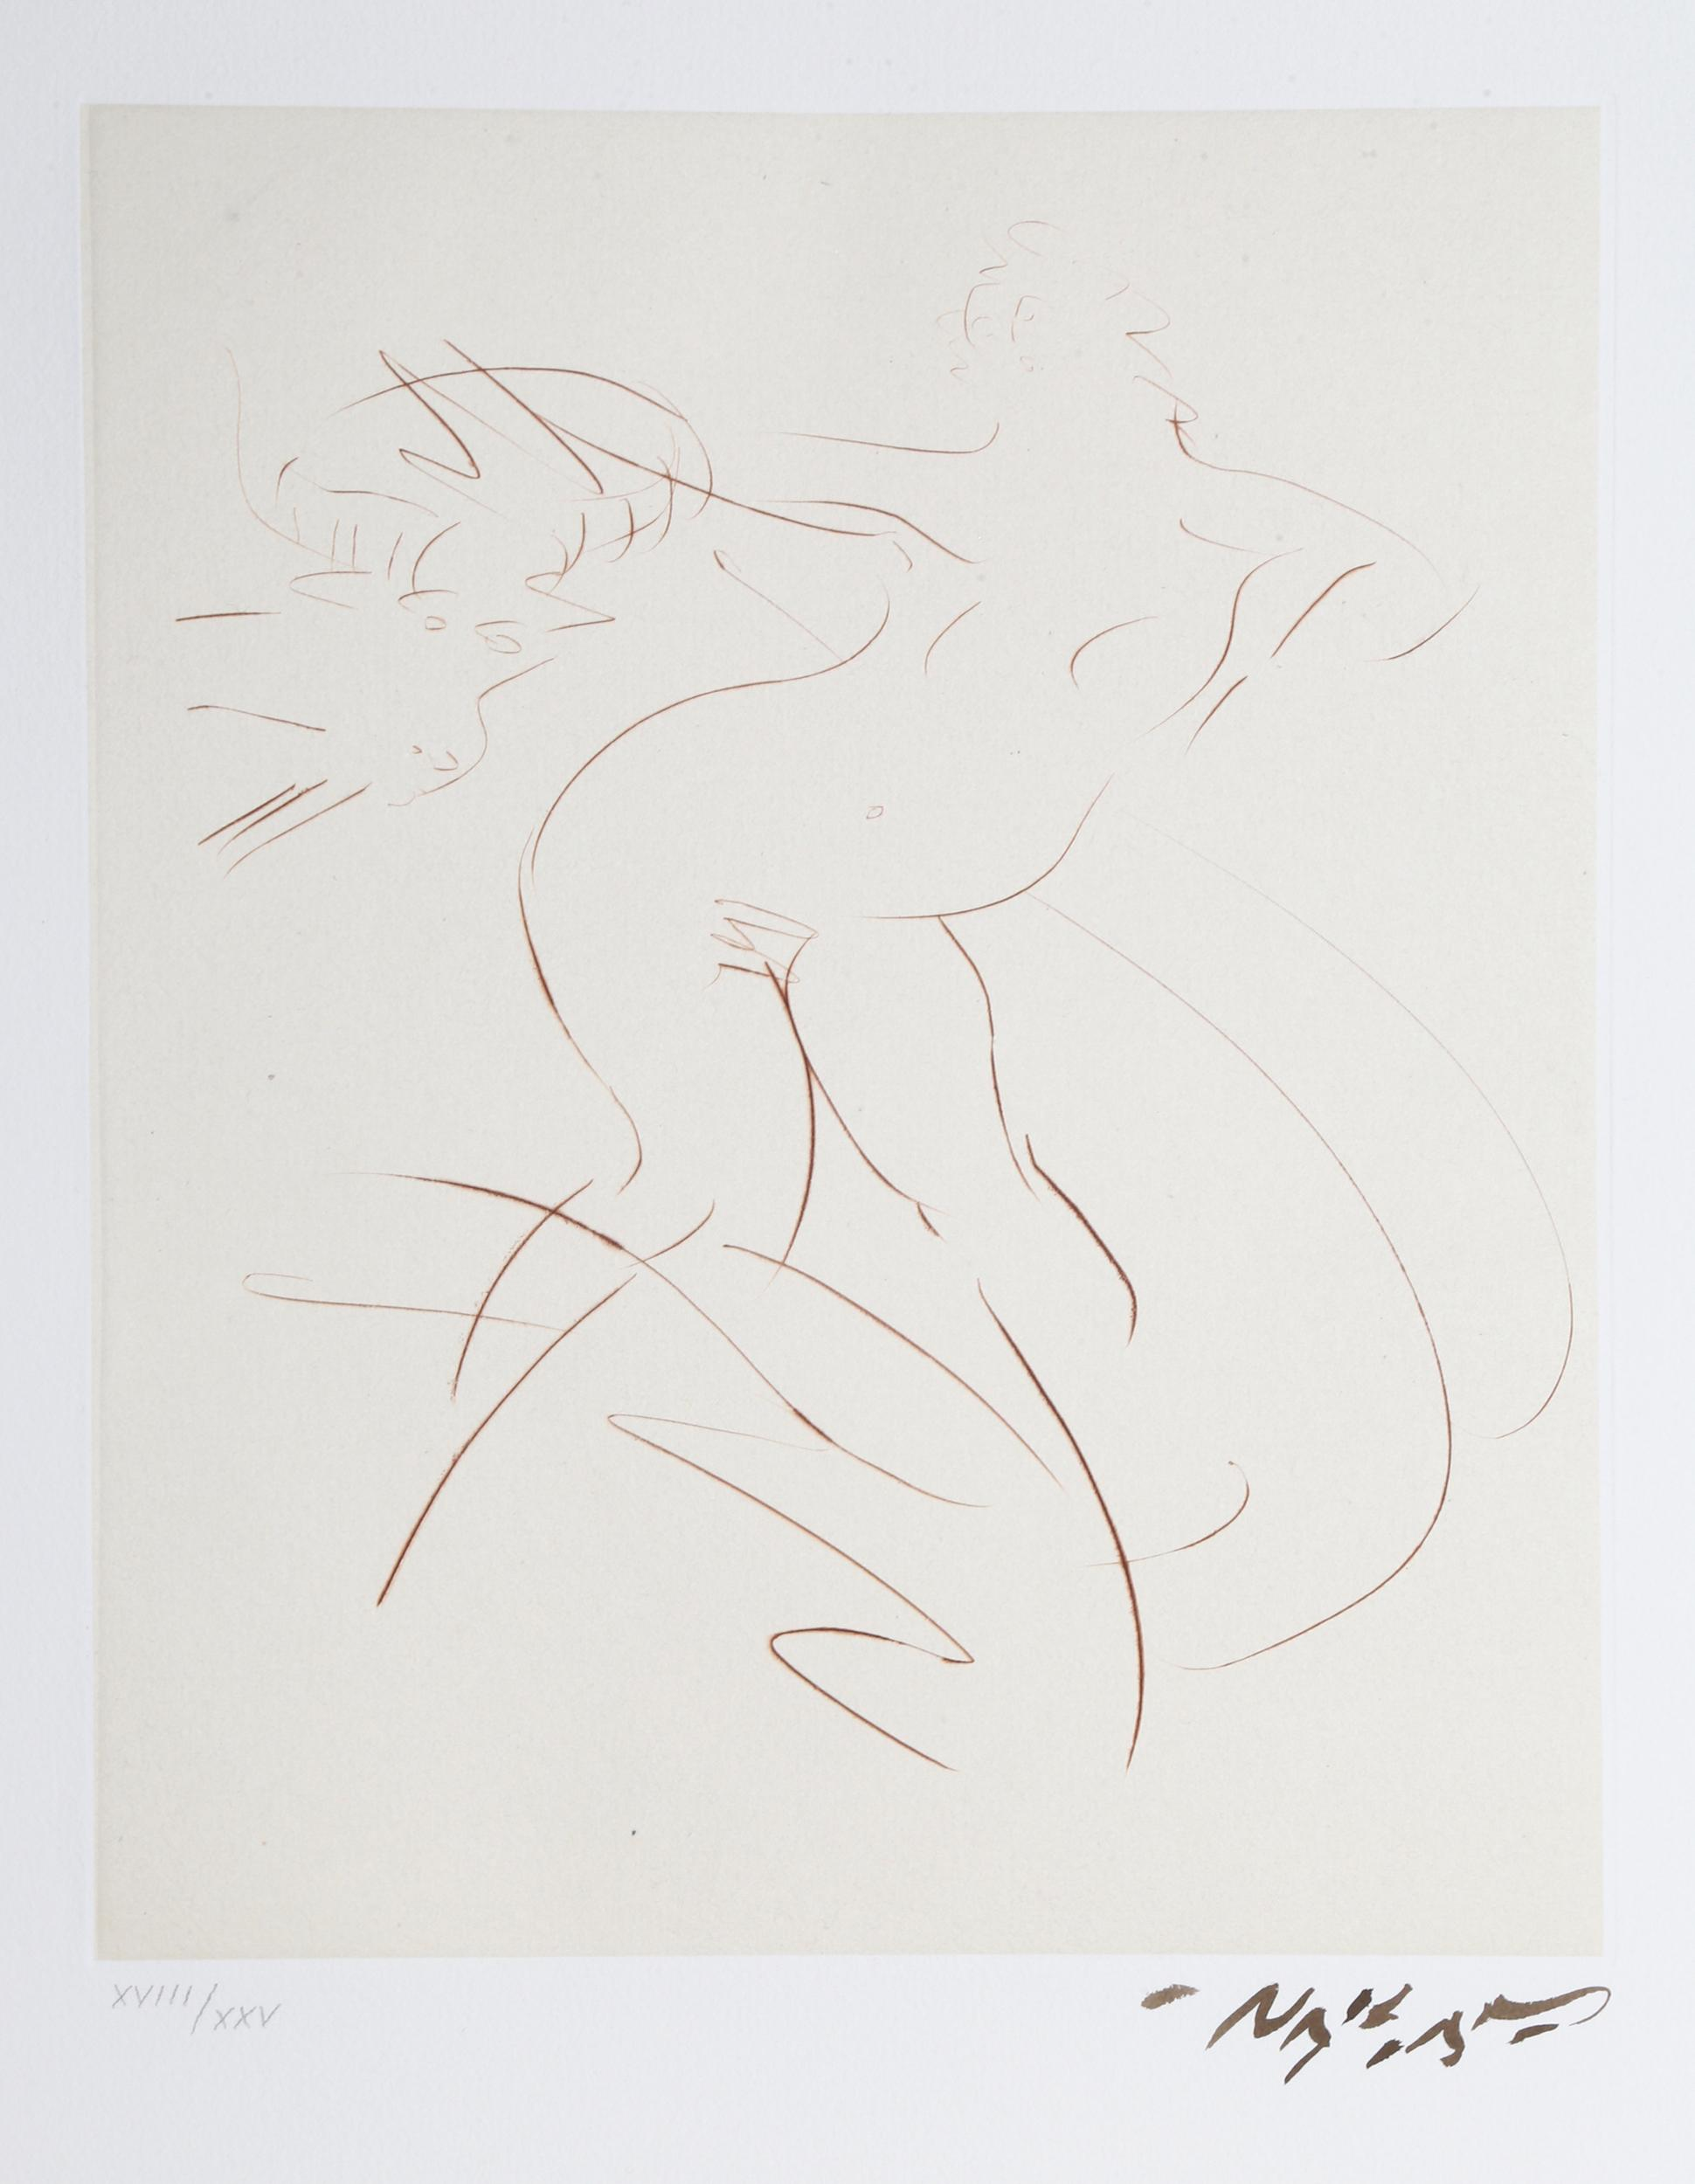 Reuben Nakian, Nymph and Goat 4 (Sepia) from Myths and Legends, Drypoint Etching with Chine Colle